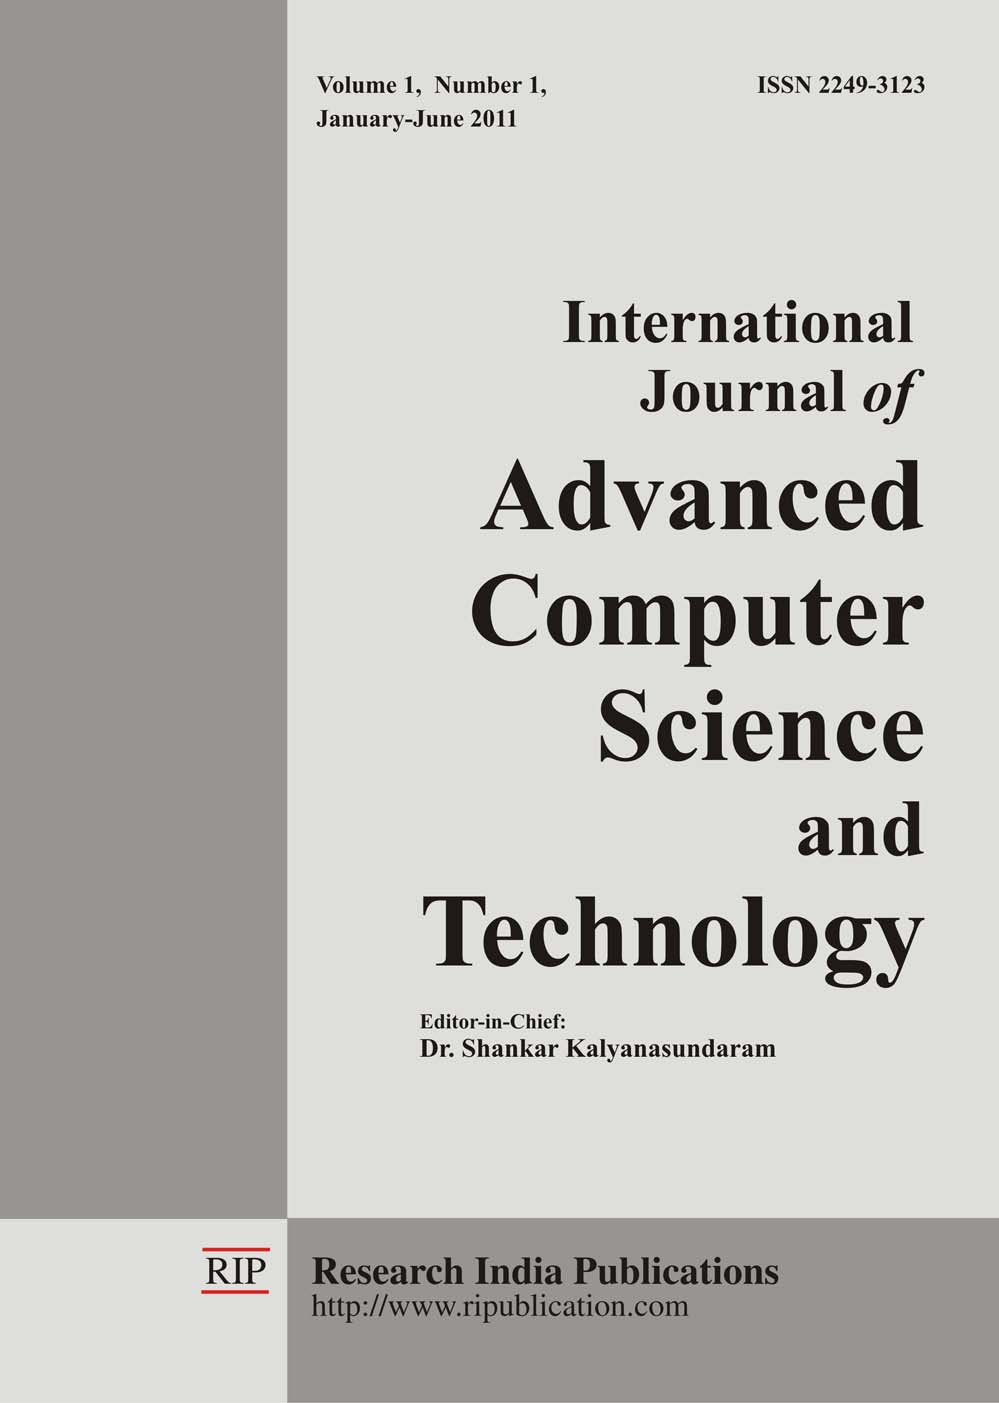 journal of technical writing and communication Journal of technical writing and communication j tech writ comm published/hosted by baywood publishing companyissn: 0047-2816 the journal of technical writing and communication strives to meet the diverse communication needs of industry, management, government, and academia.